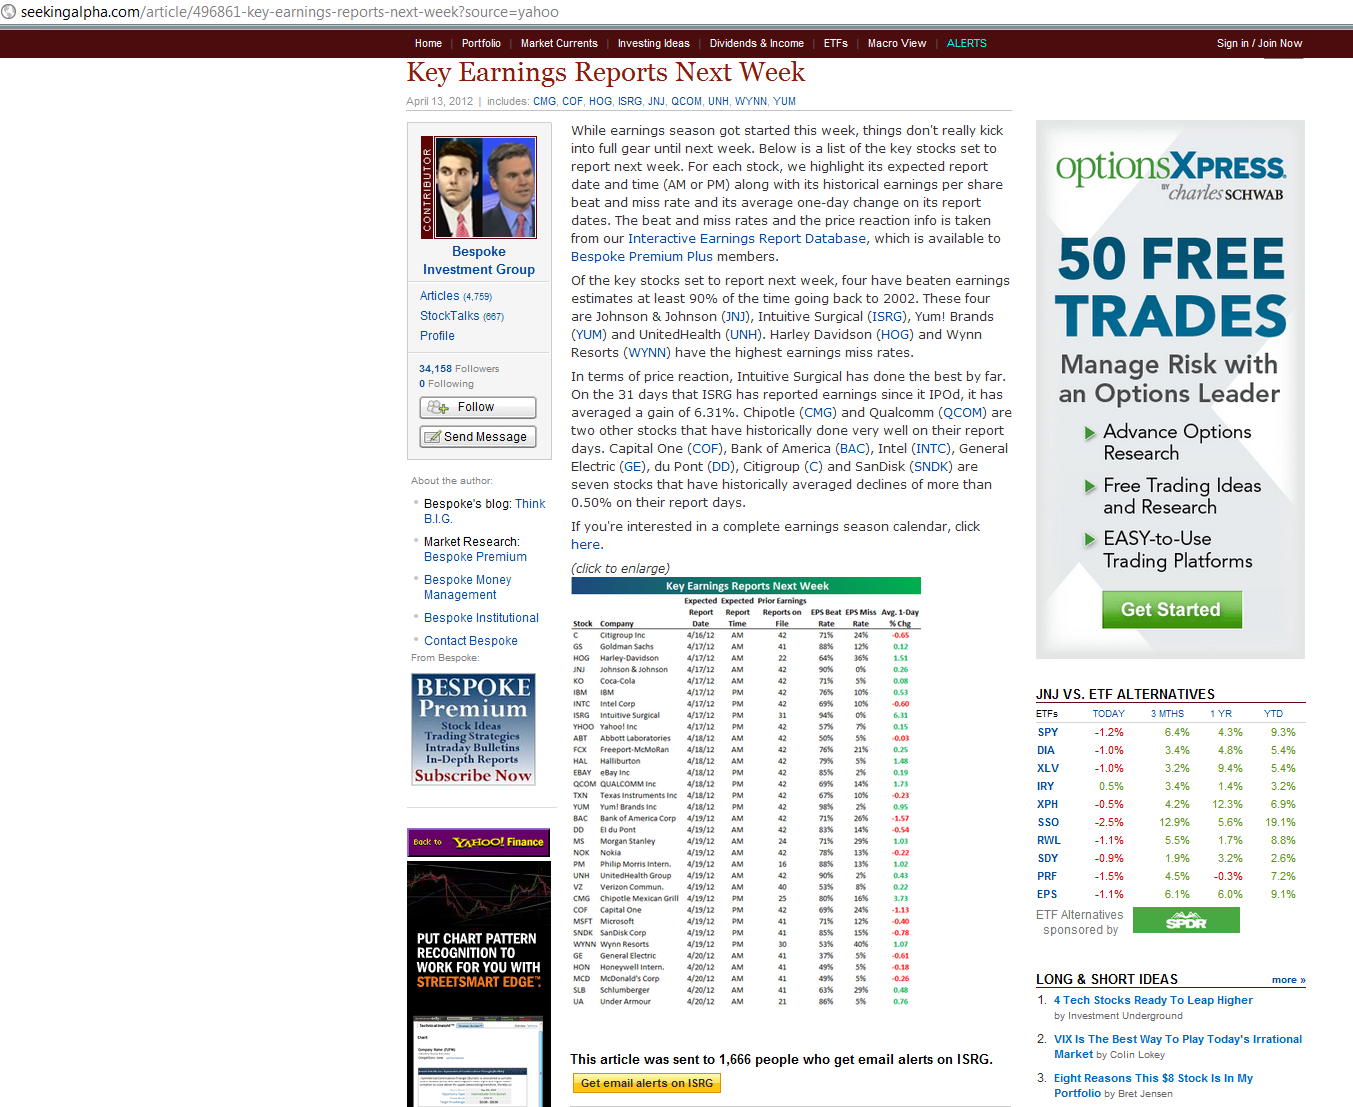 How to trade stock options part 2 of 5